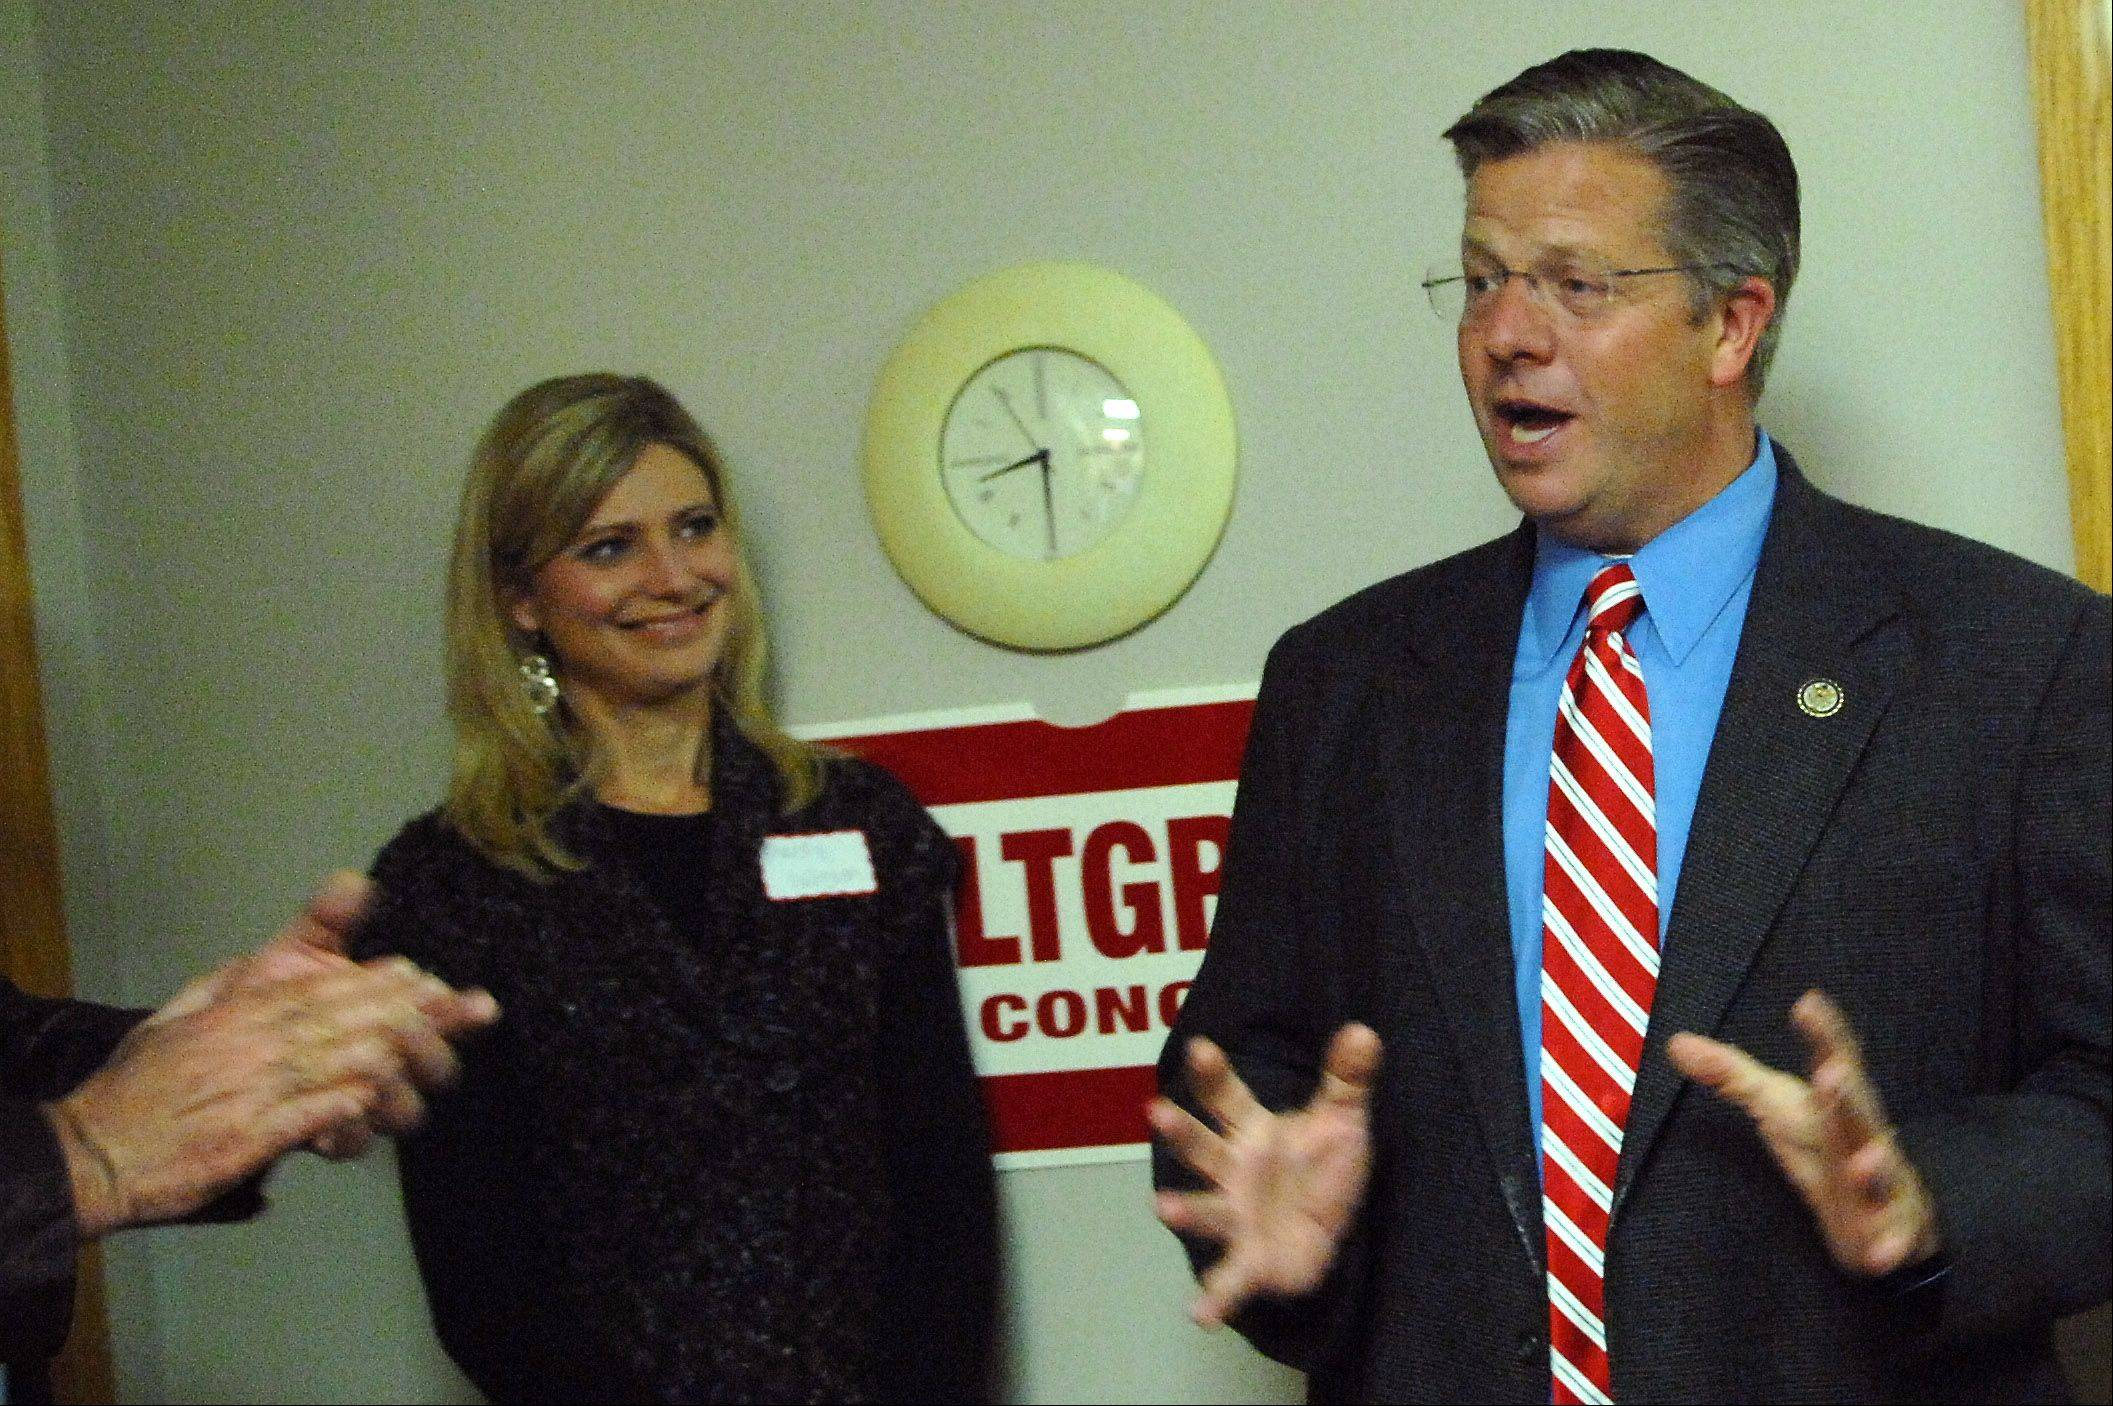 With his wife Christy looking on, Congressman Randy Hultgren thanks his supporters at his campaign headquarters in St. Charles Tuesday night after presumably winning re-election.